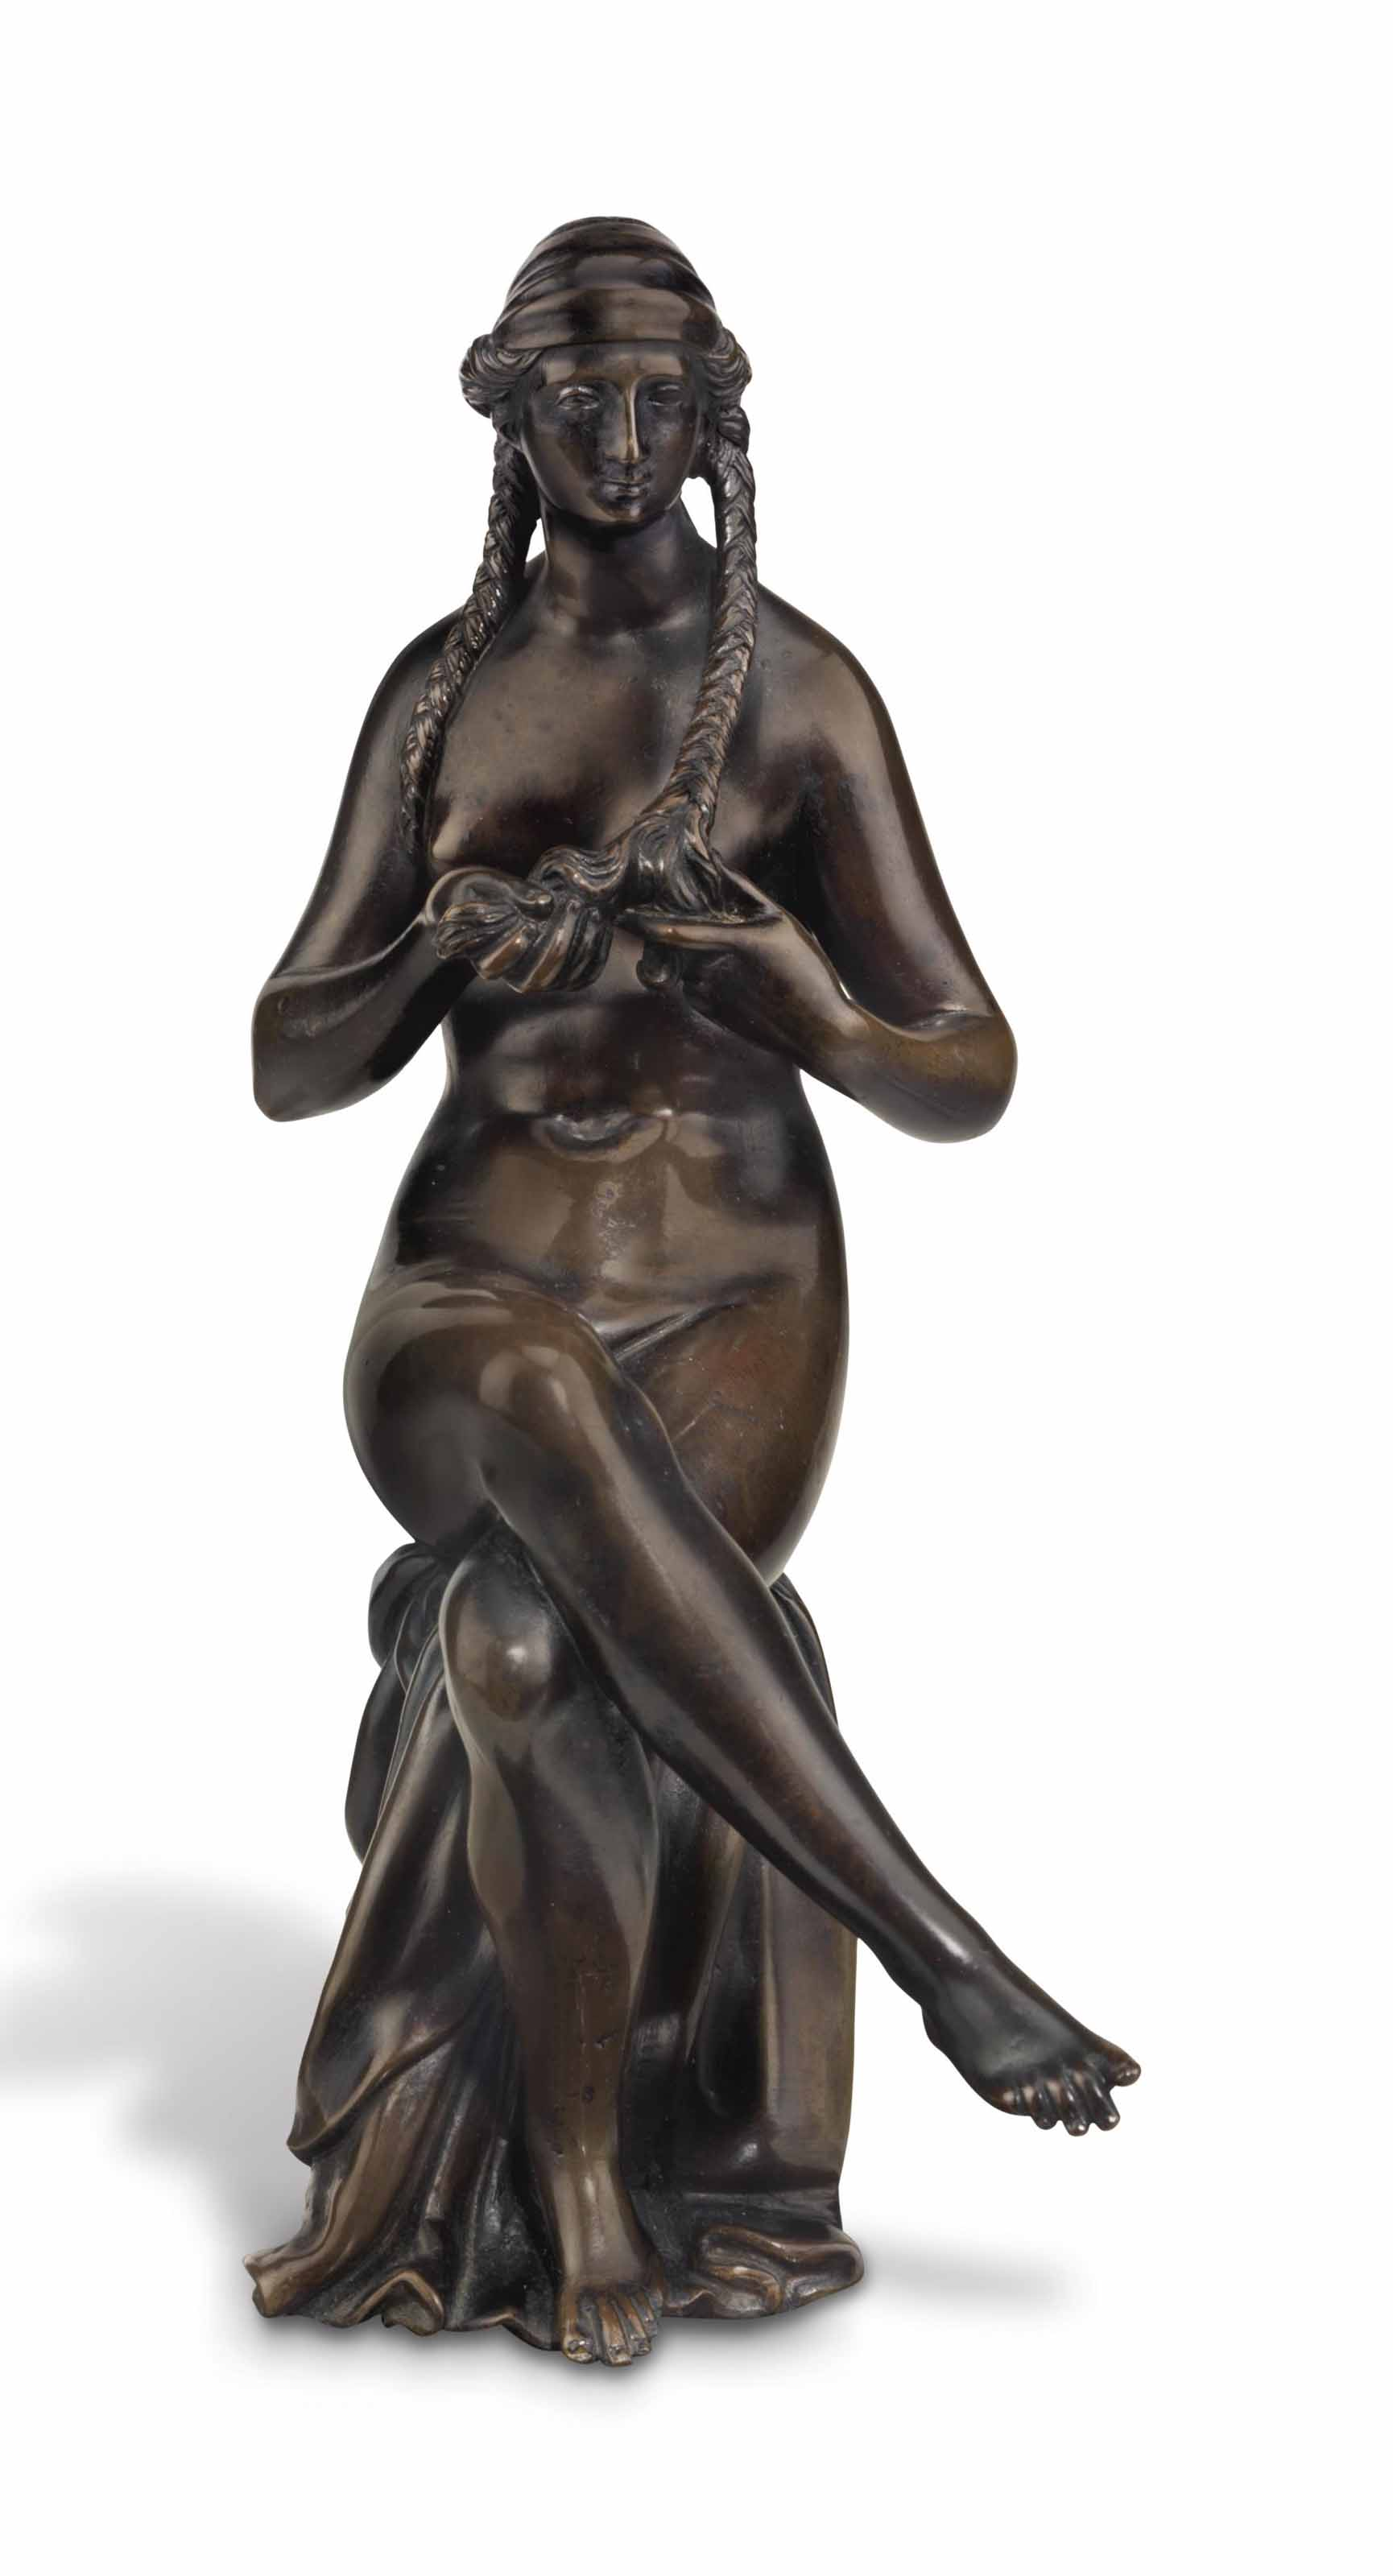 A BRONZE FIGURE OF A SEATED NUDE WOMAN BRAIDING HER HAIR